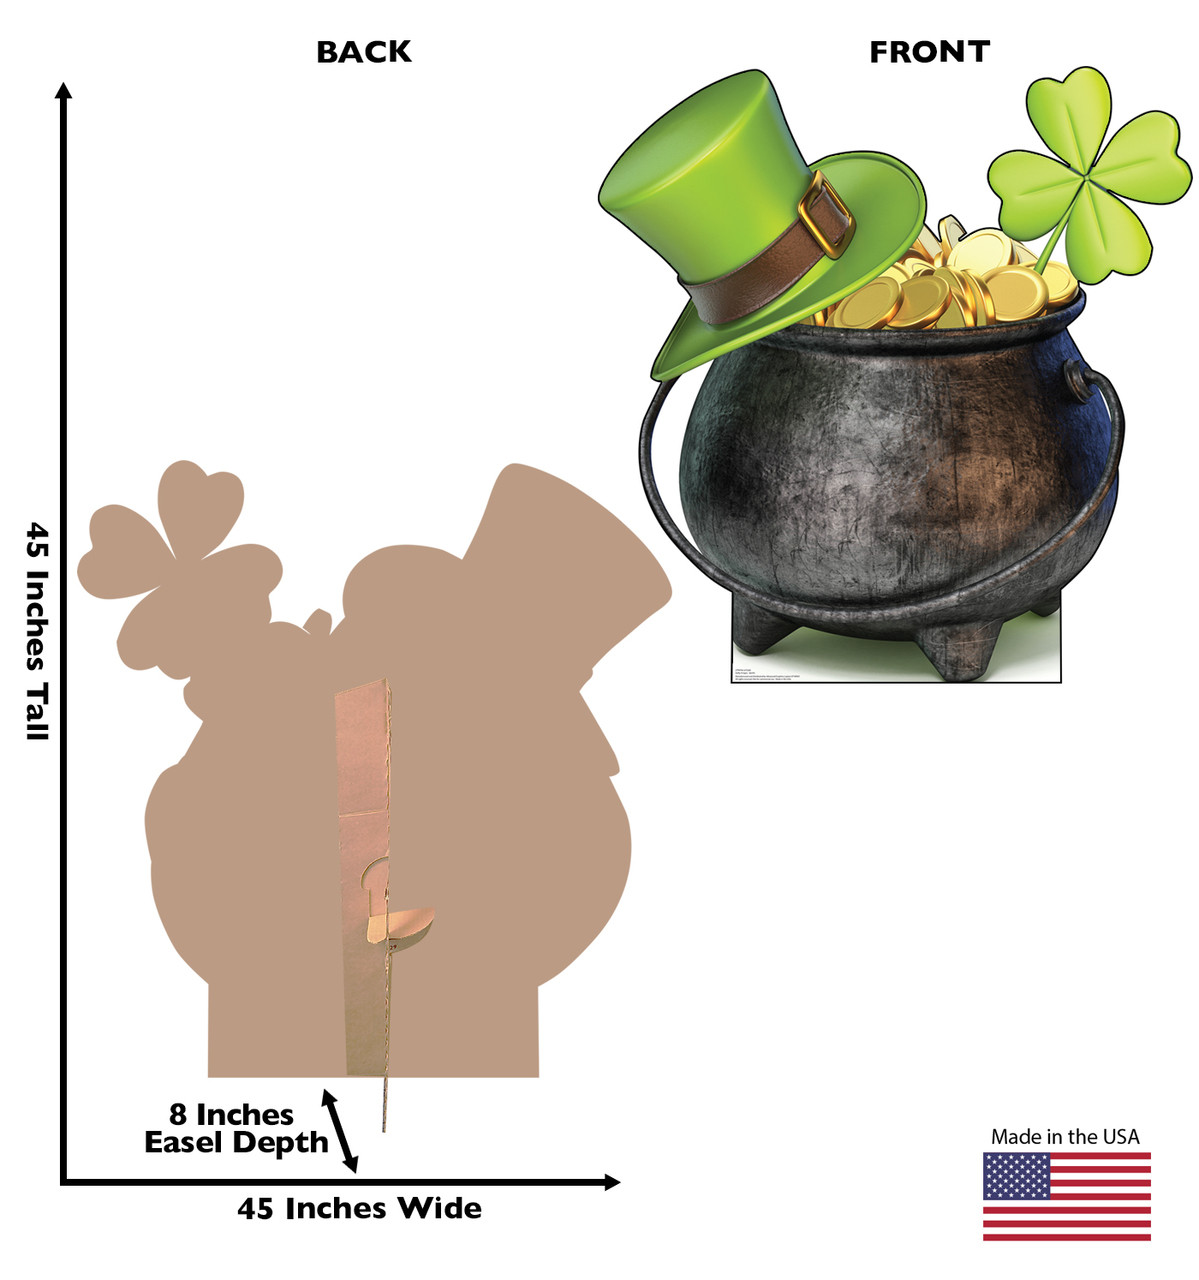 Life-size cardboard standee of a Pot of Gold with back and front dimensions.